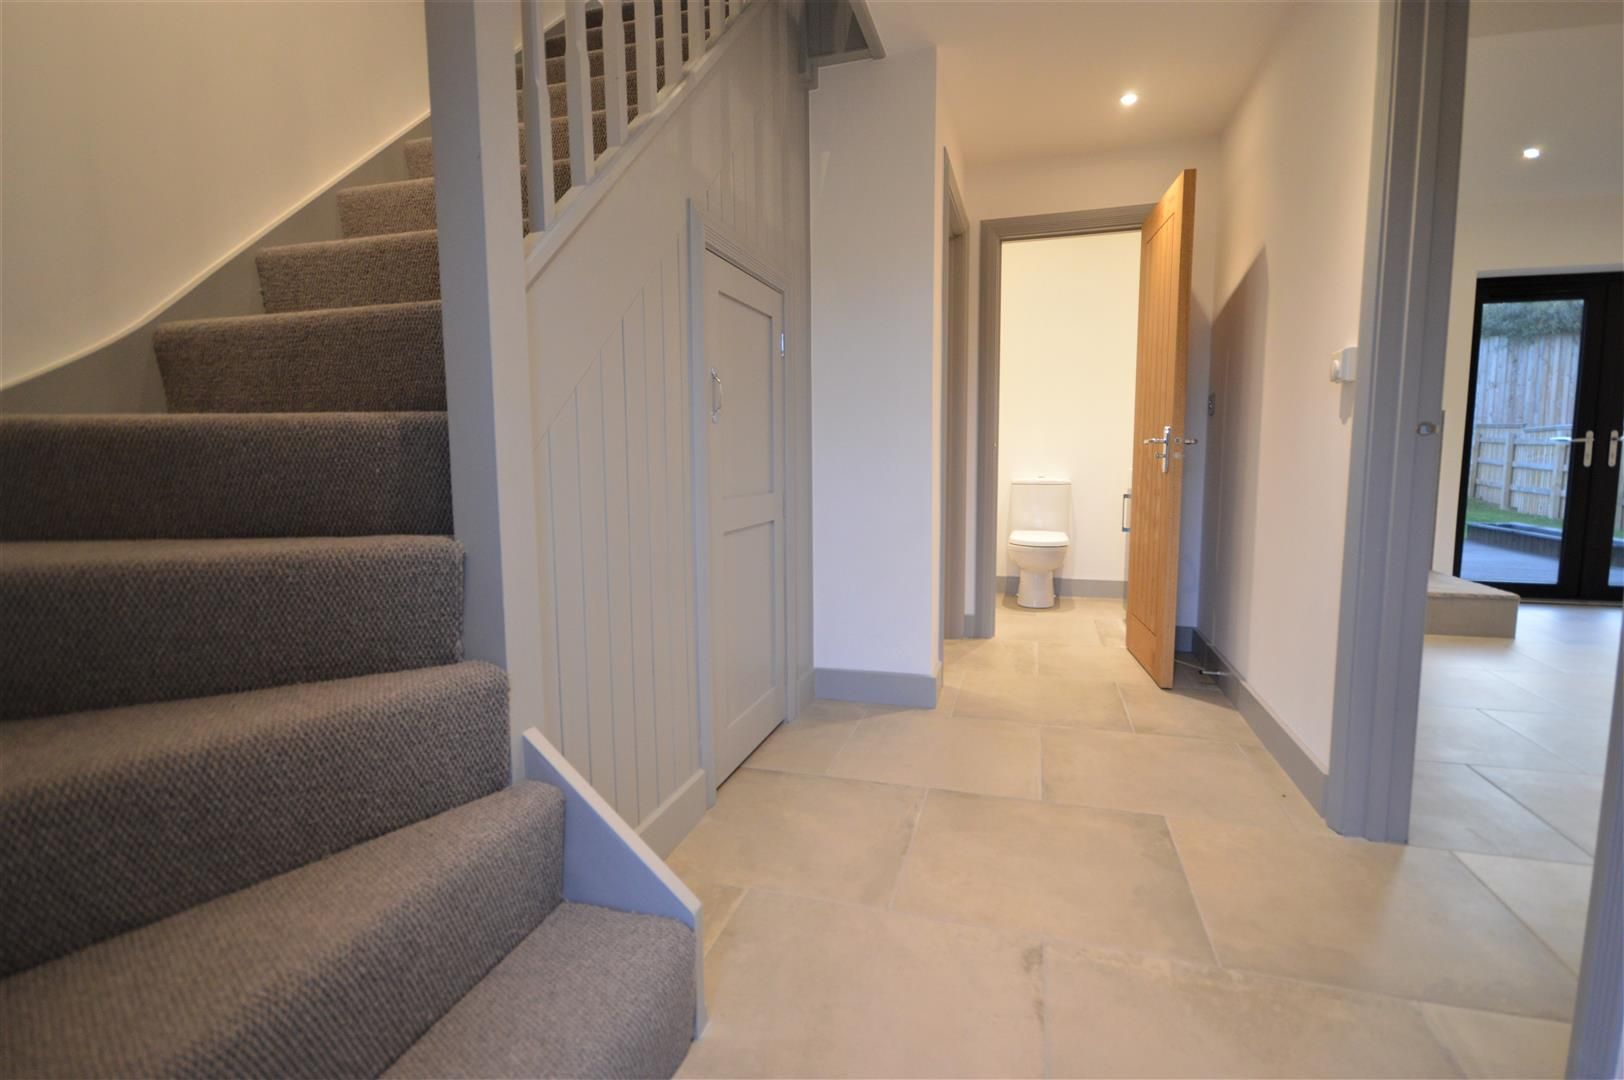 4 bed detached for sale in Brimfield 9